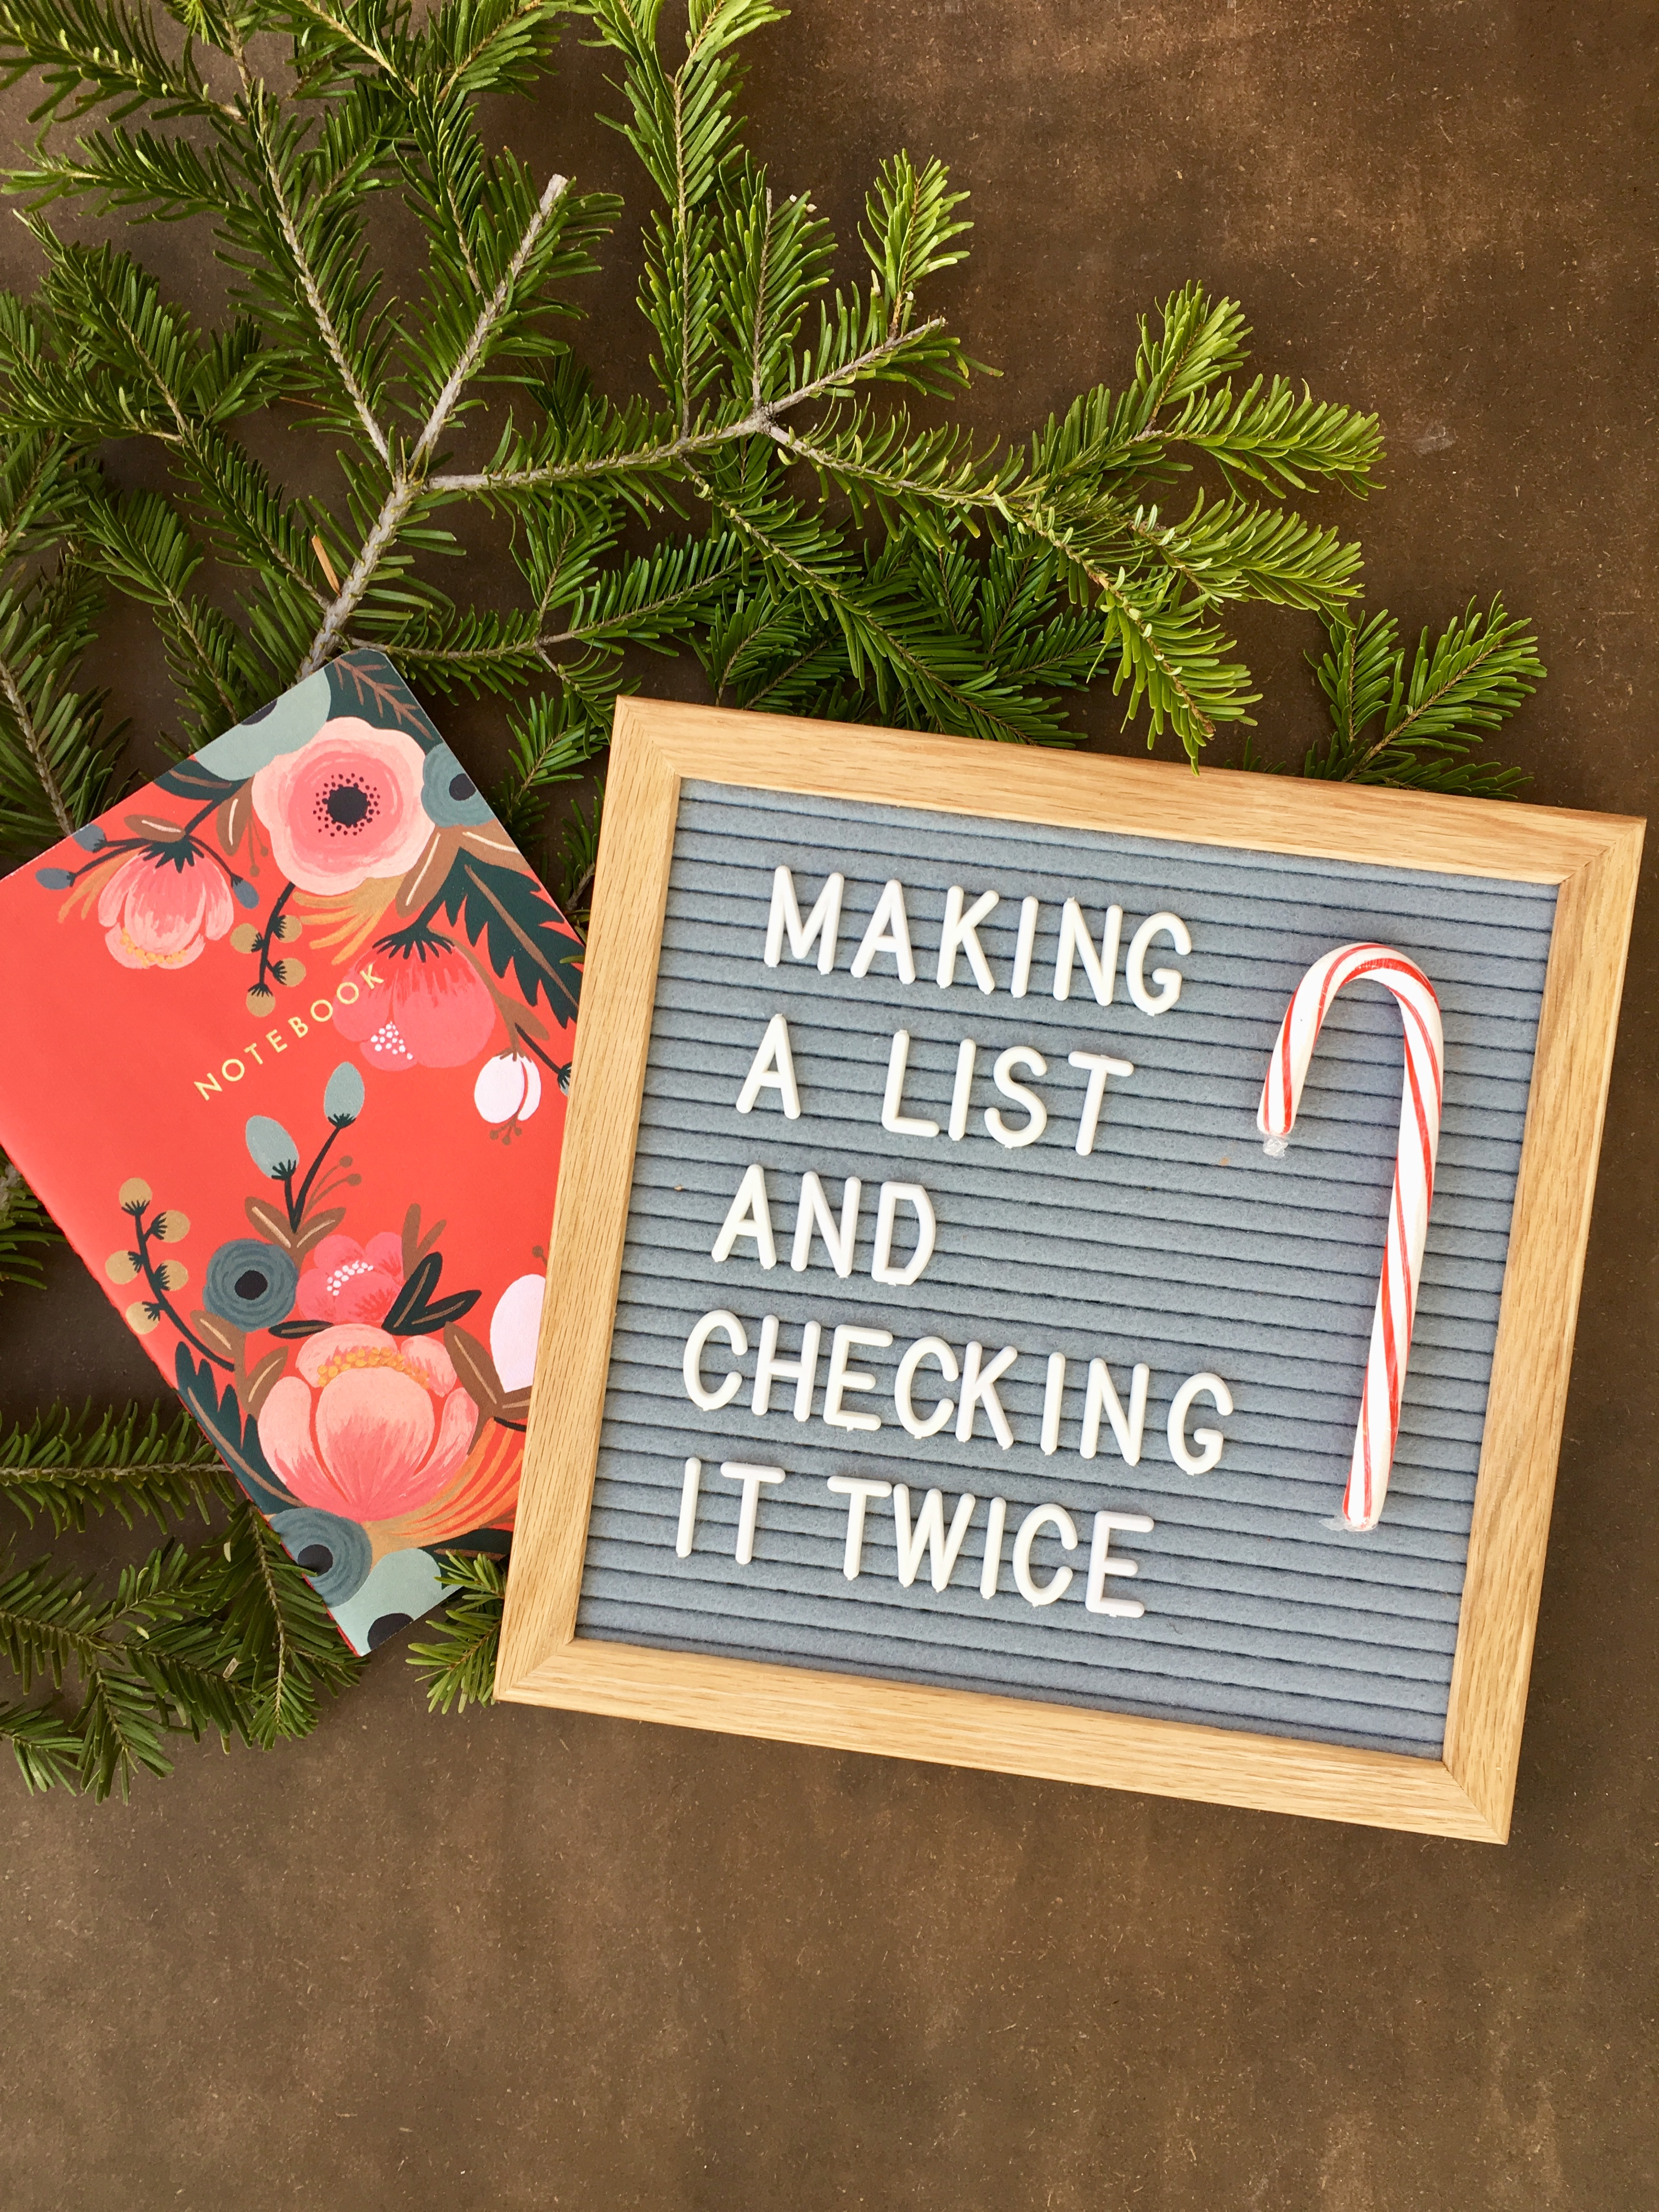 Making A List And Checking It Twice – Getting Organized This Holiday Season